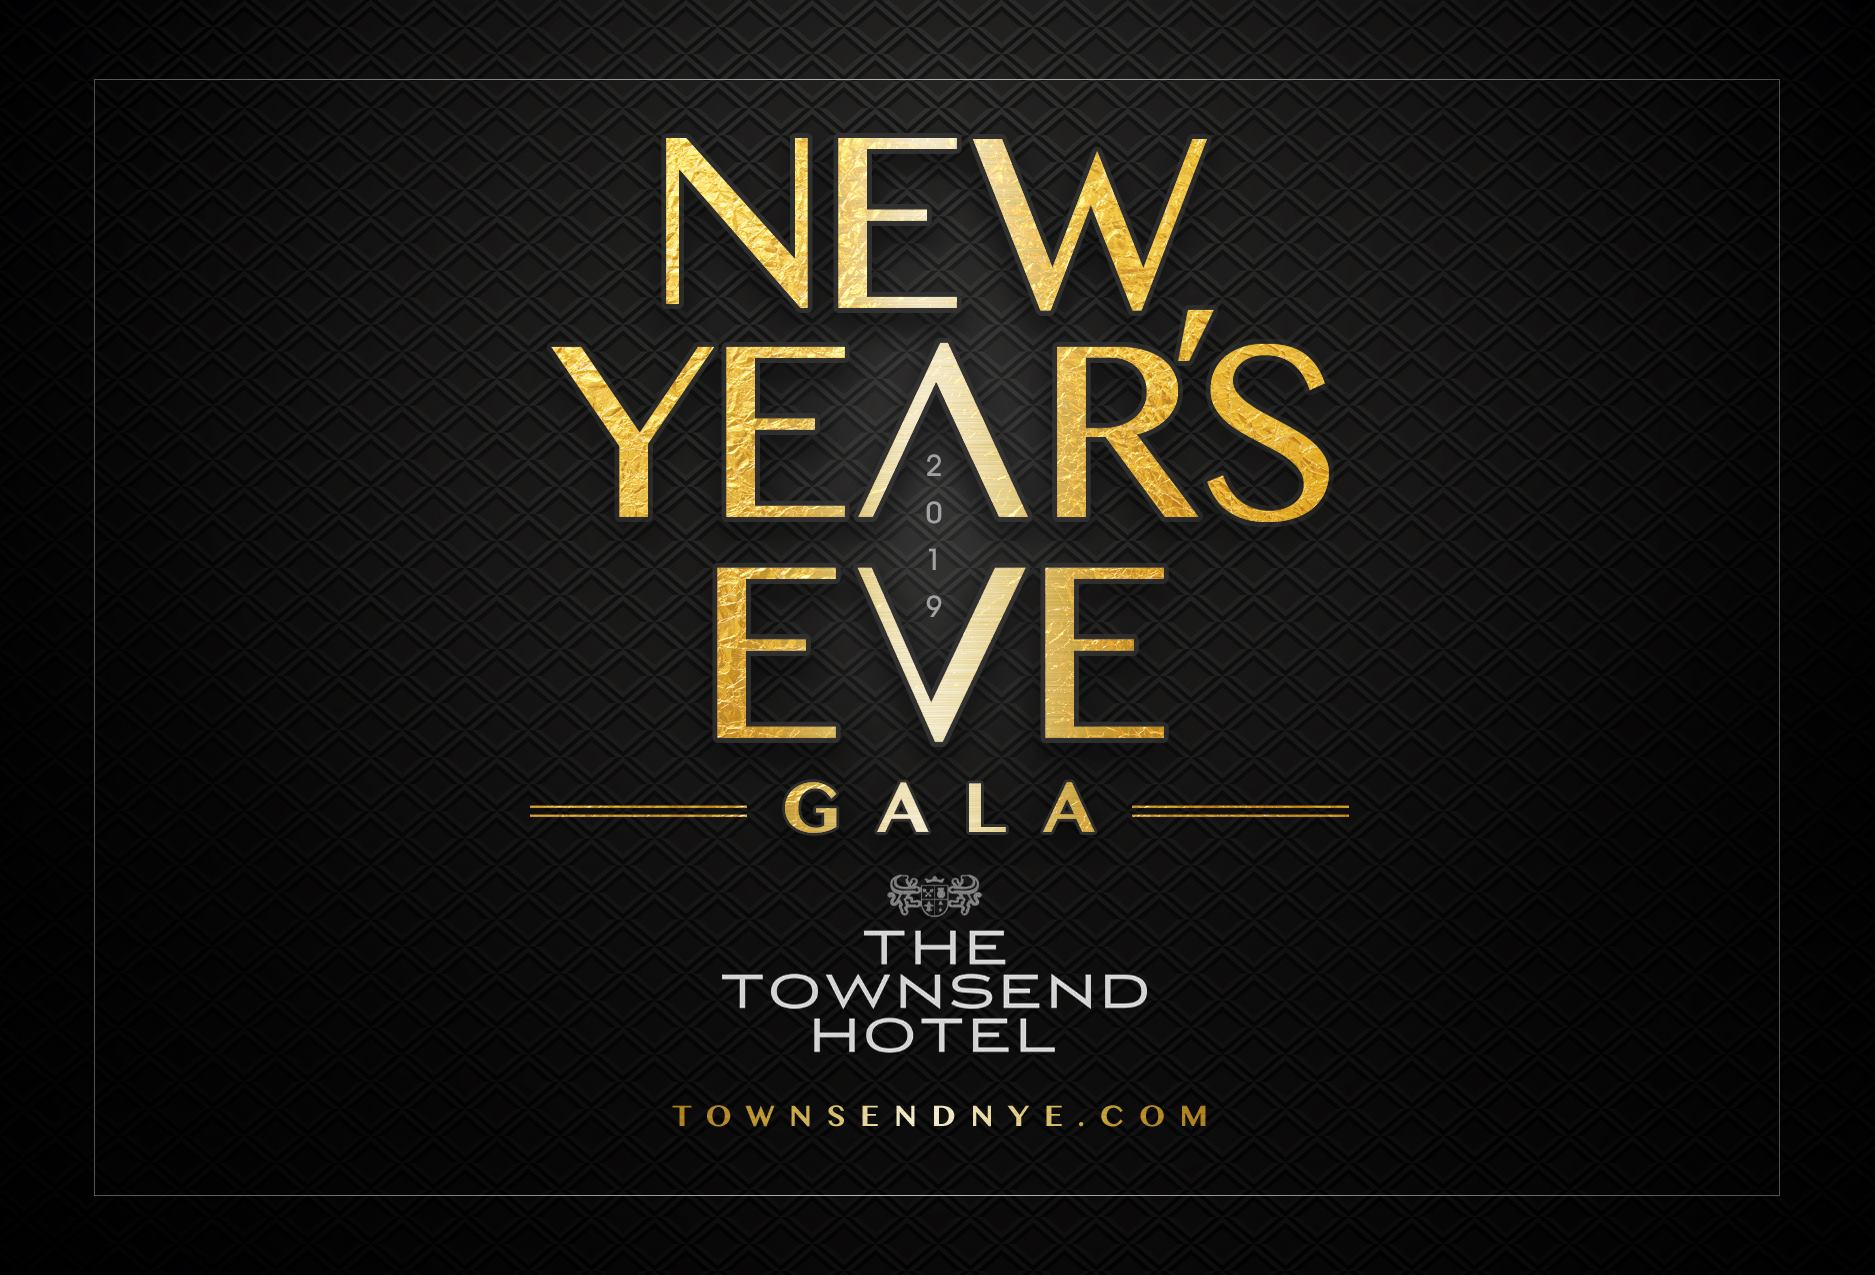 New Year's Eve Gala at The Townsend Hotel